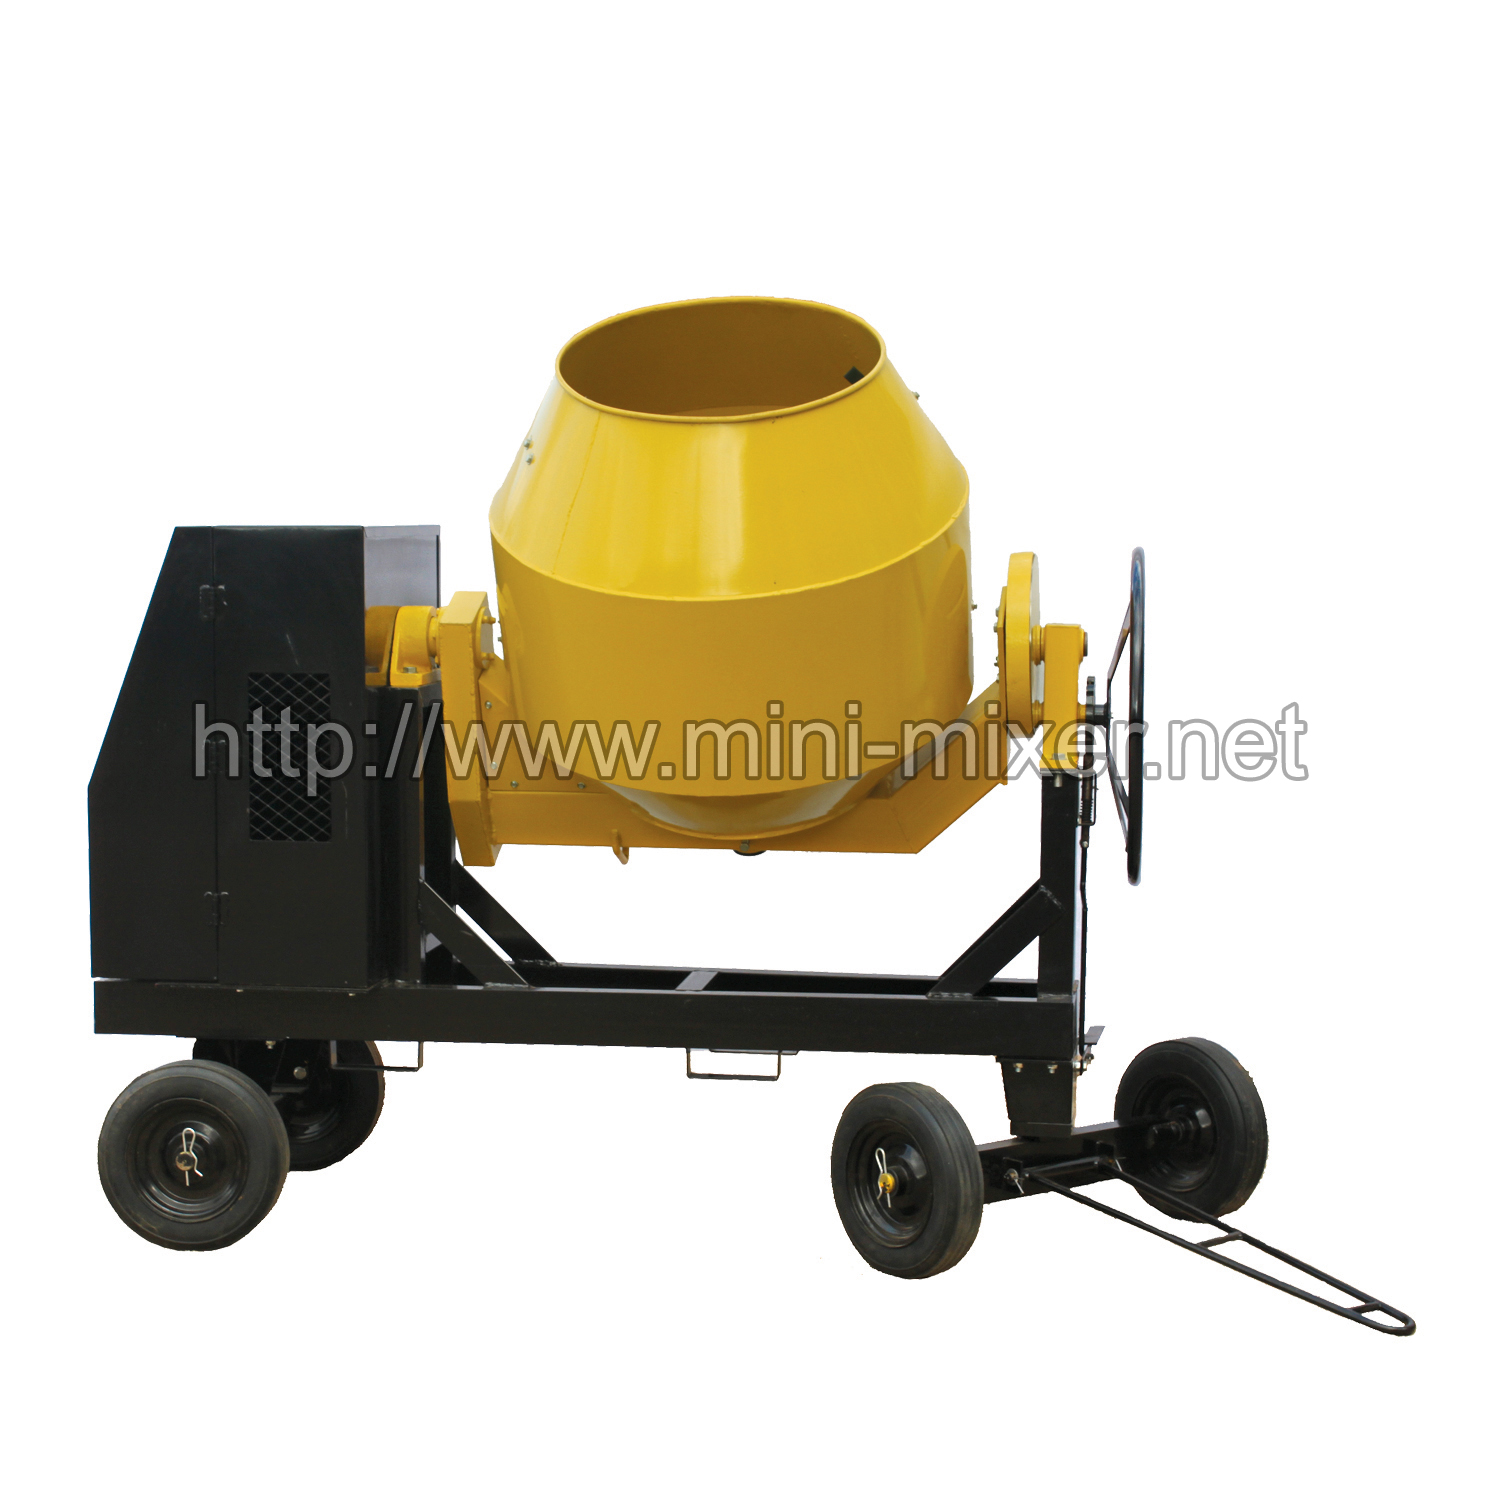 How to choose a construction mixer: tips and reviews